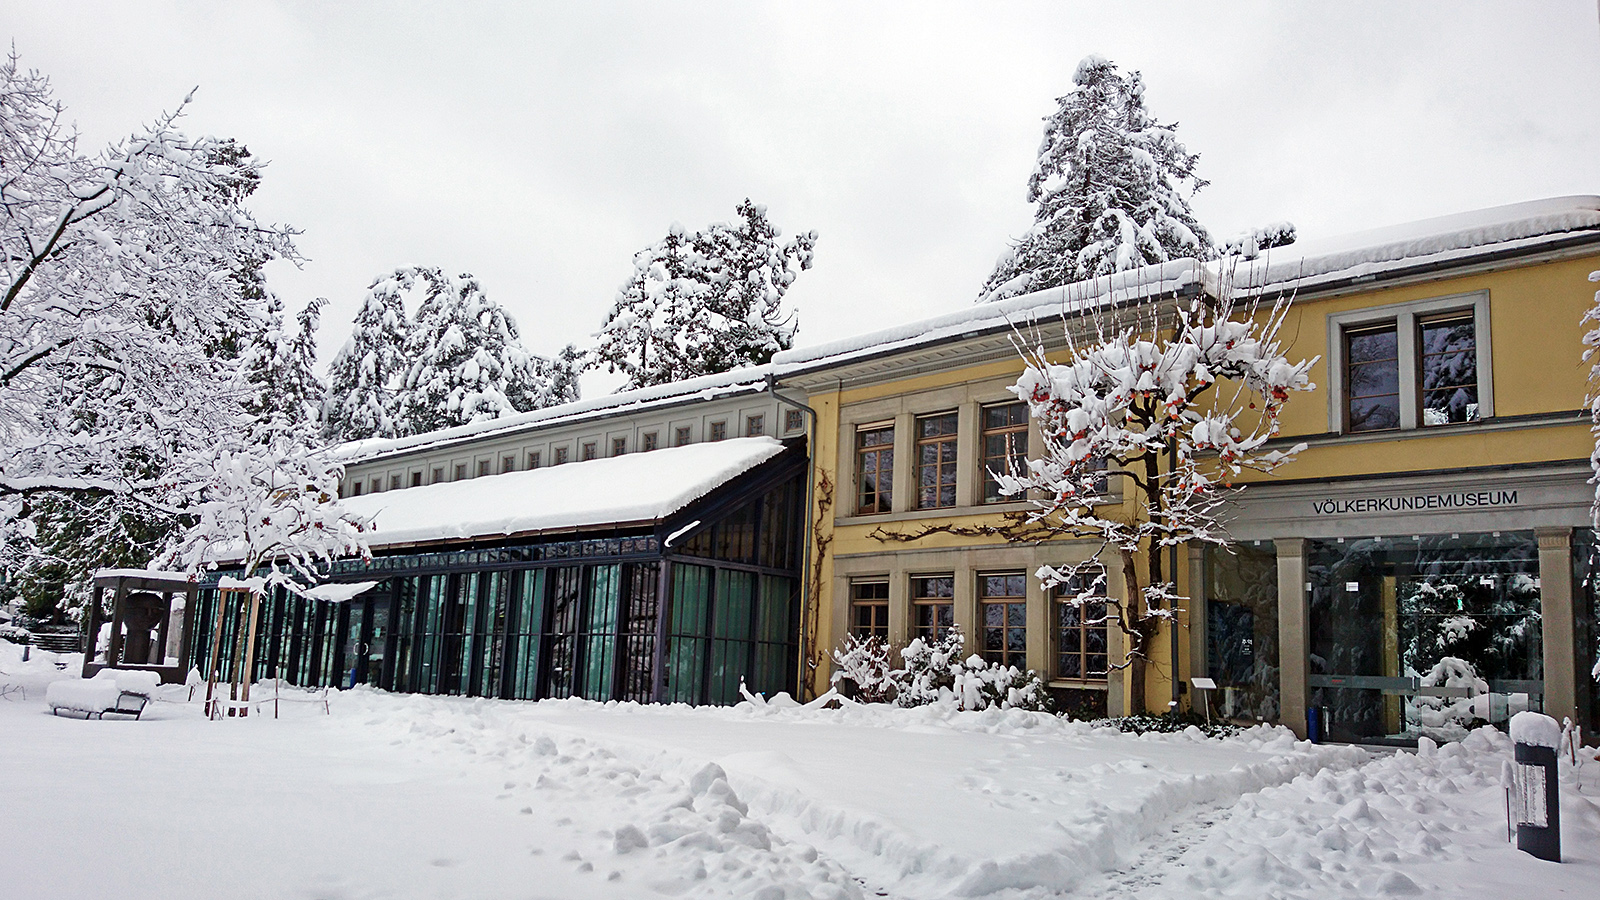 Ethnographic Museum at the University of Zurich, January 15th 2021